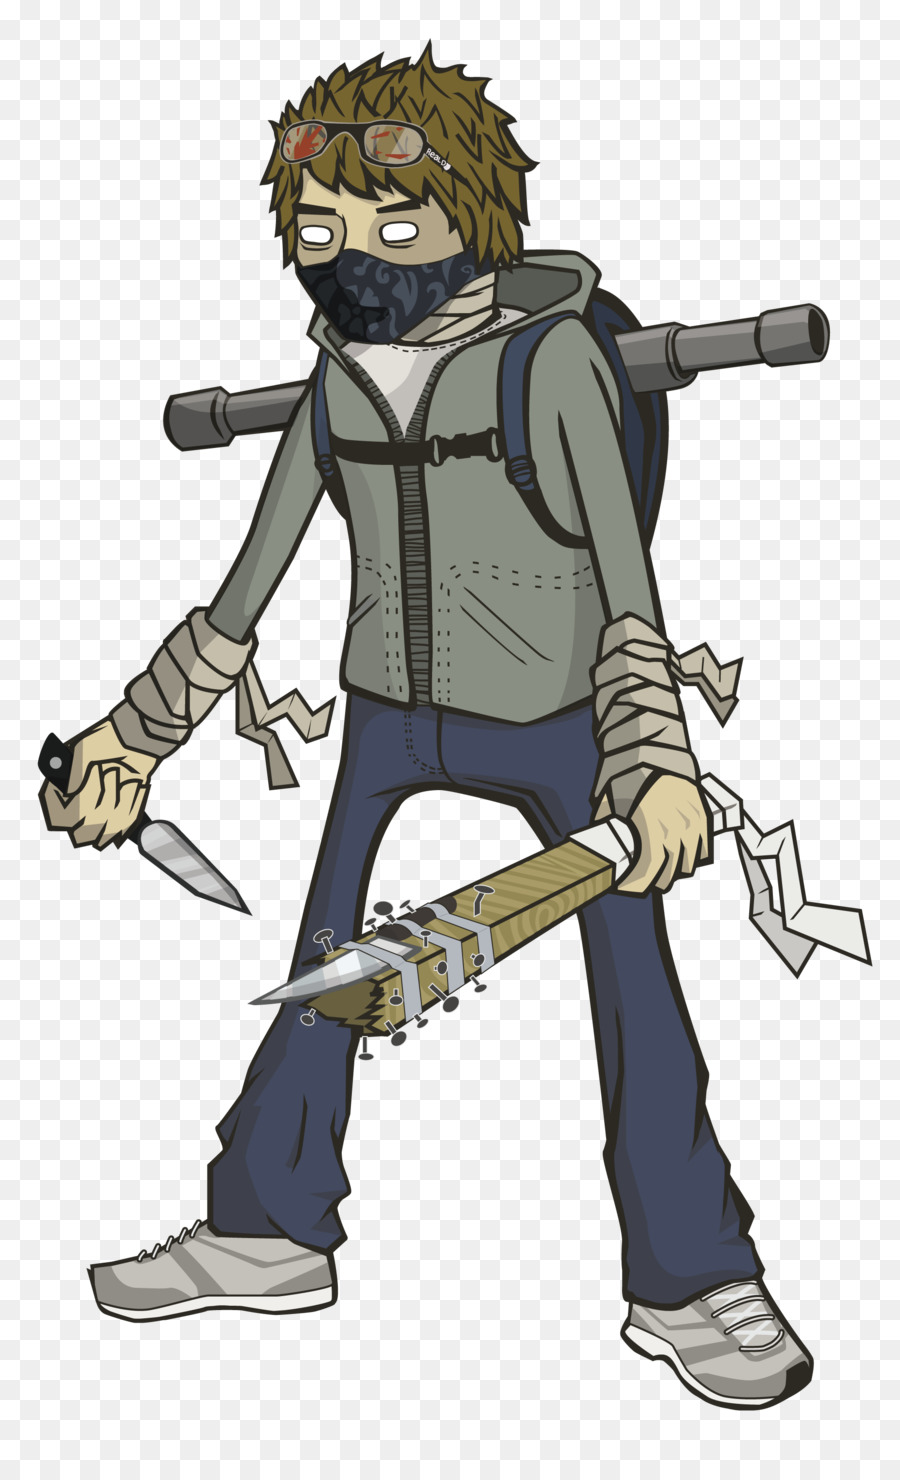 Painting cartoon drawing illustration. Zombie clipart zombie survival